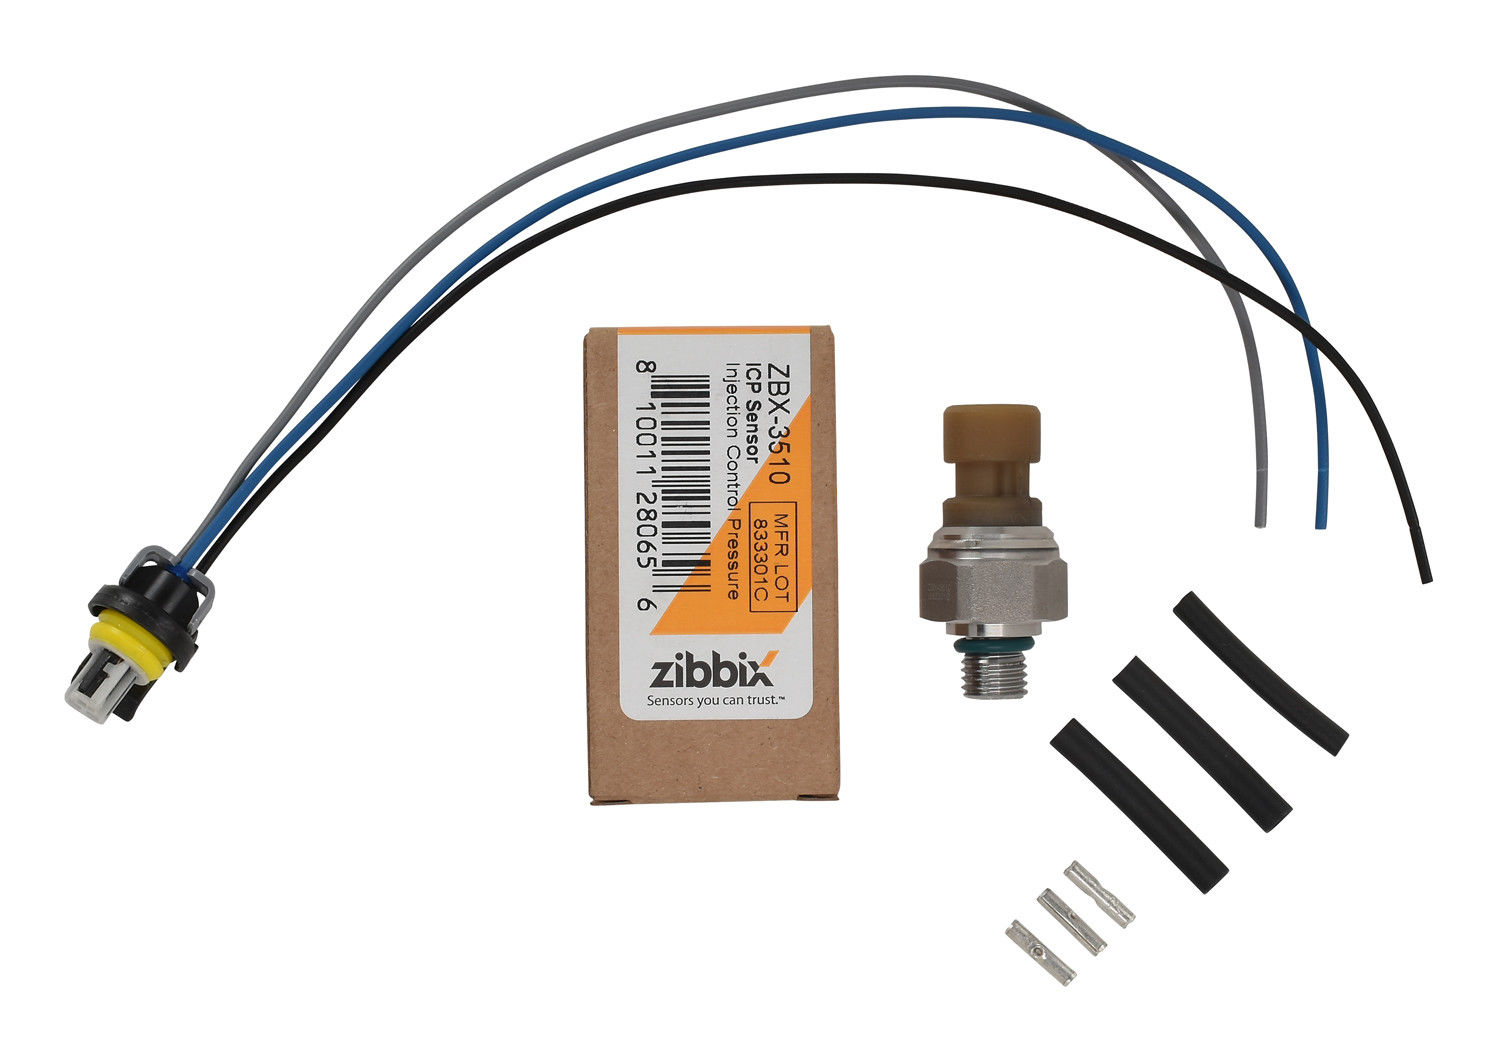 Zibbix ZBX-3510-PK1 ICP Injection Control Pressure Sensor Pigtail Kit For 04-10 6.0L Ford Powerstroke Diesel